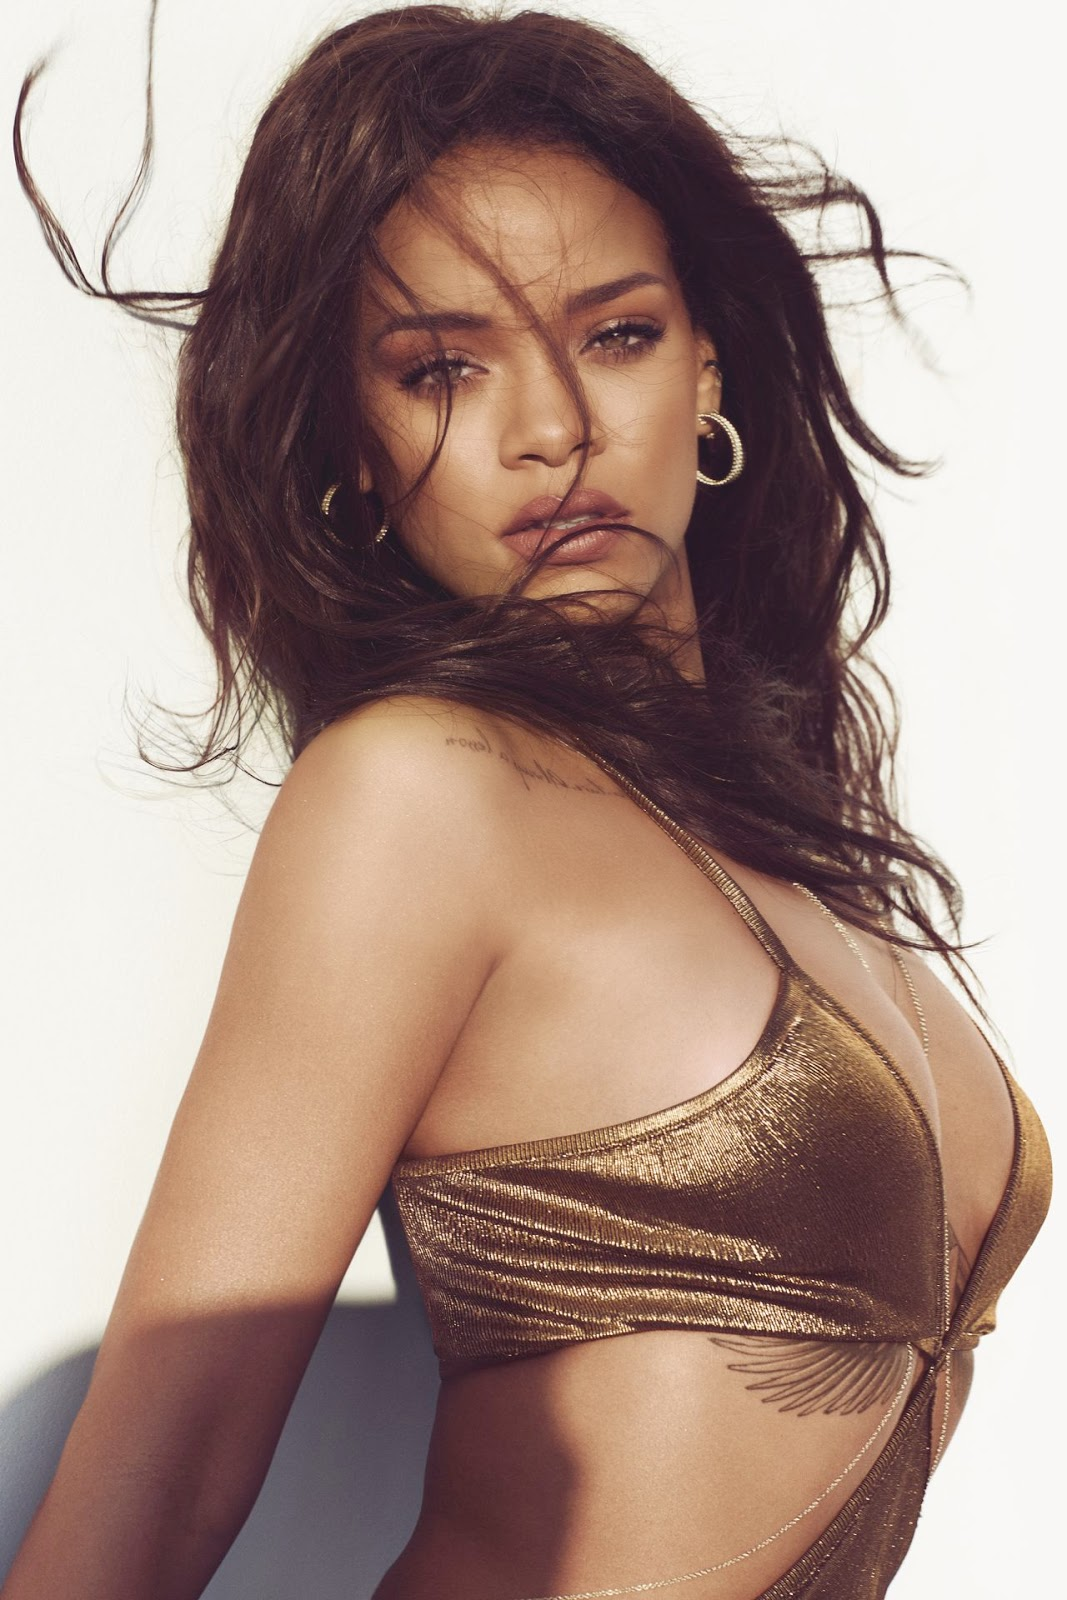 Rihanna - Harper's Bazaar US March 2015 edition